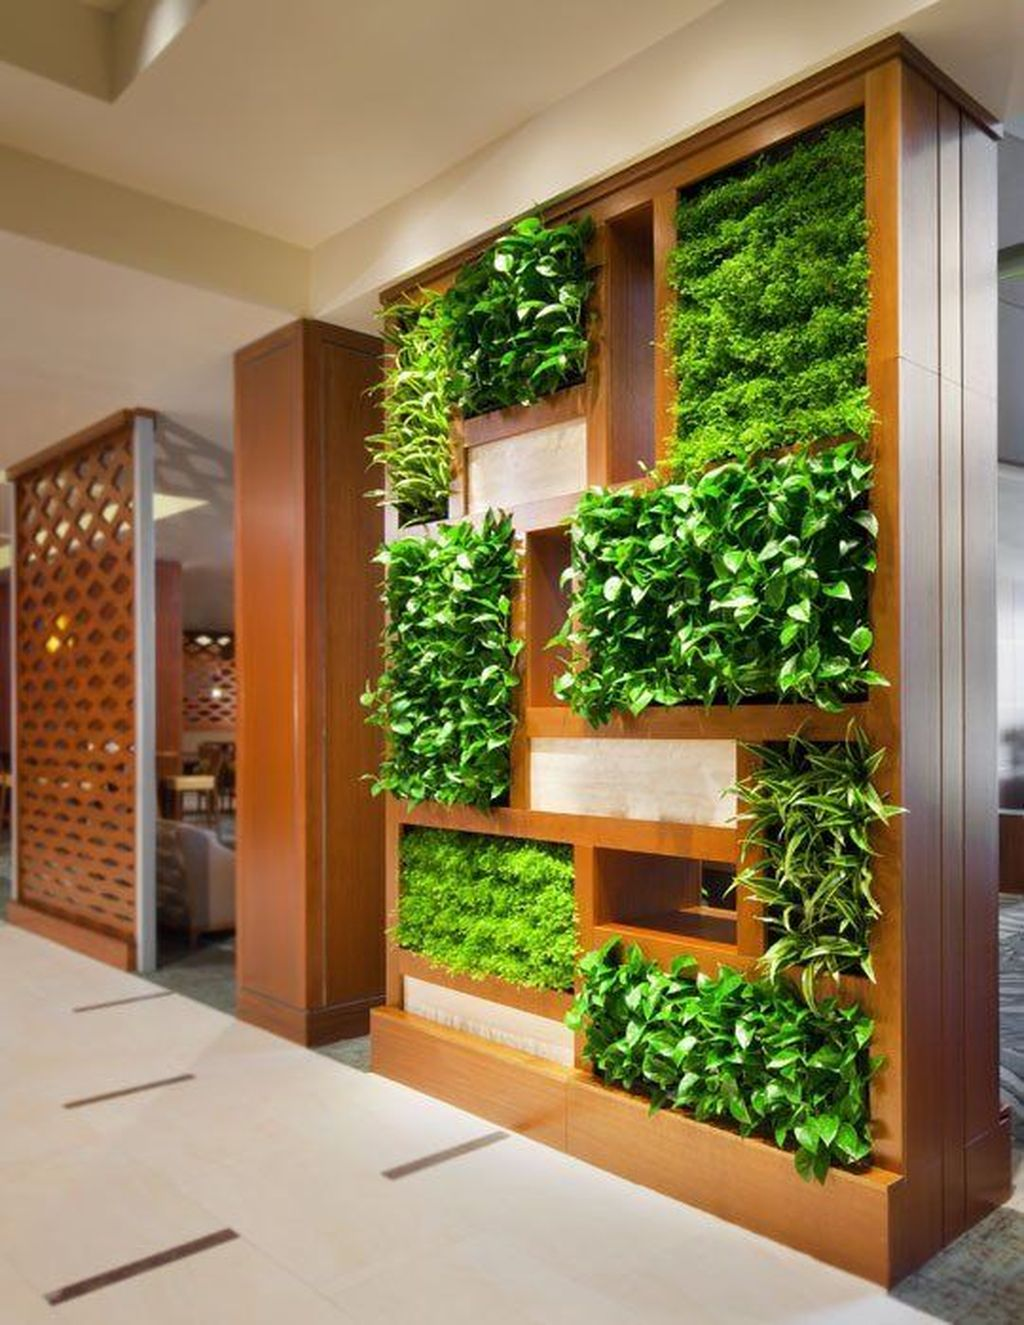 Amazing Living Wall Indoor Decoration Ideas 16